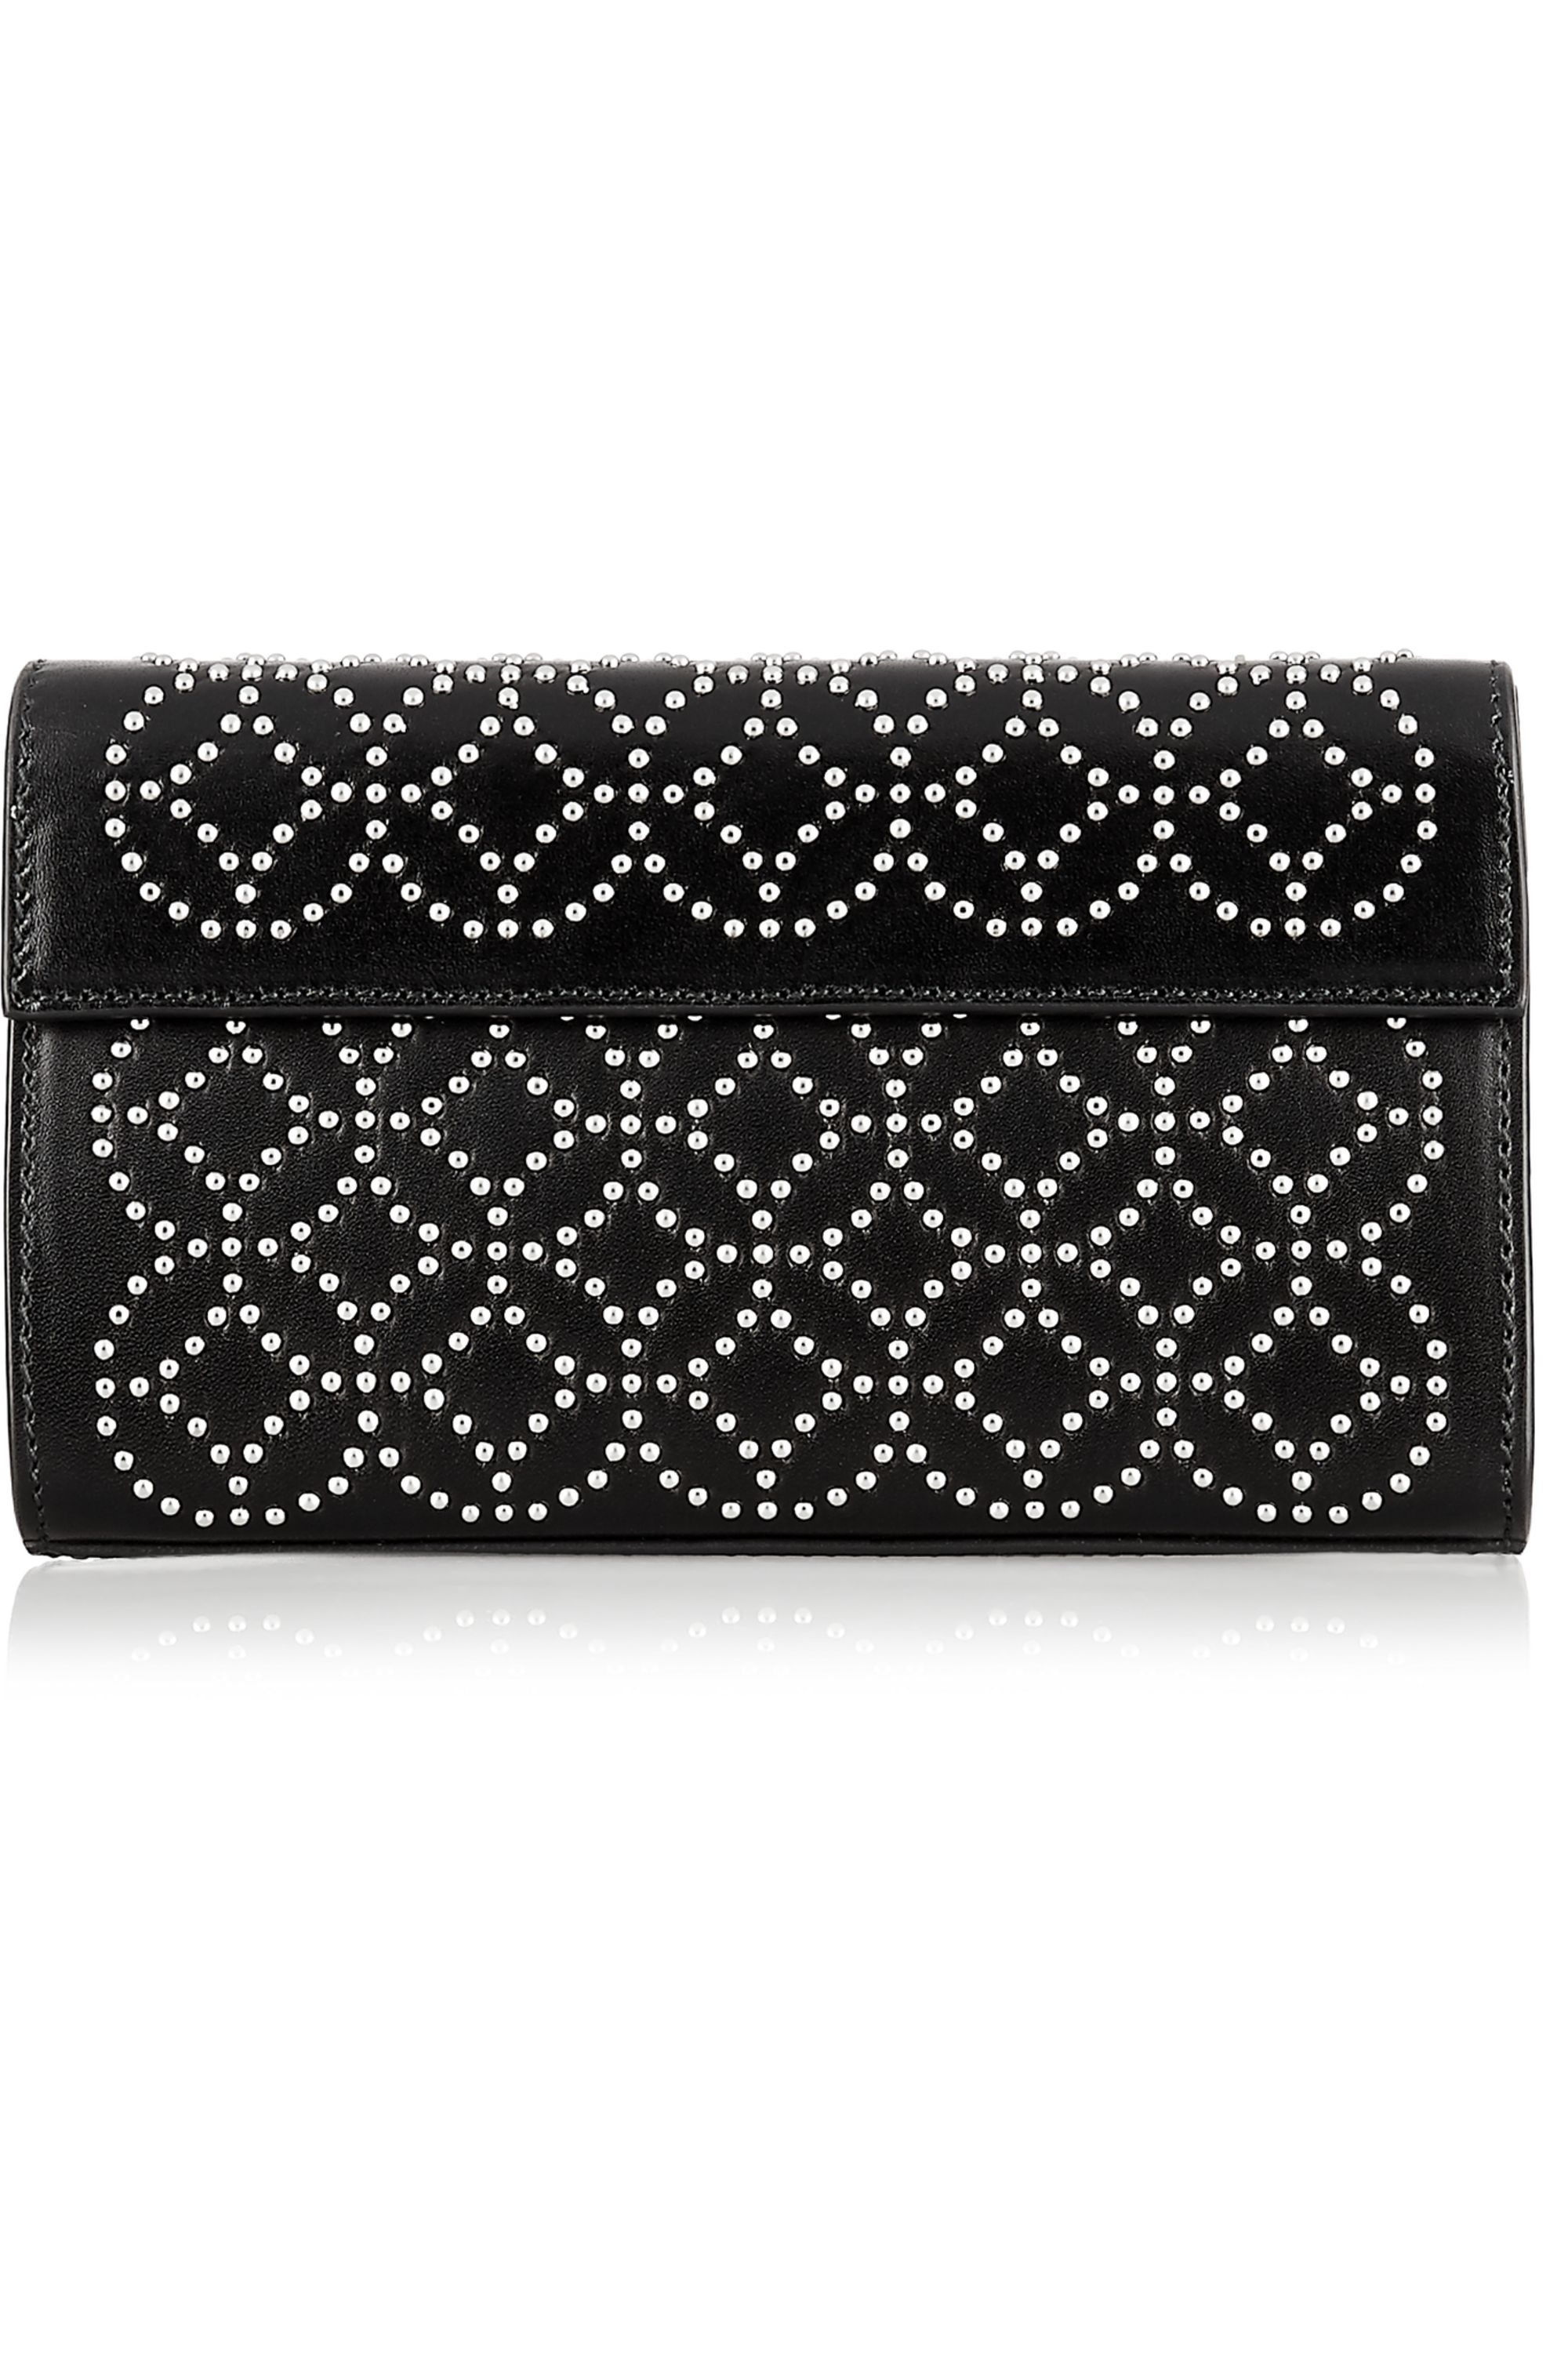 Alaïa Arabesque mini embellished leather clutch